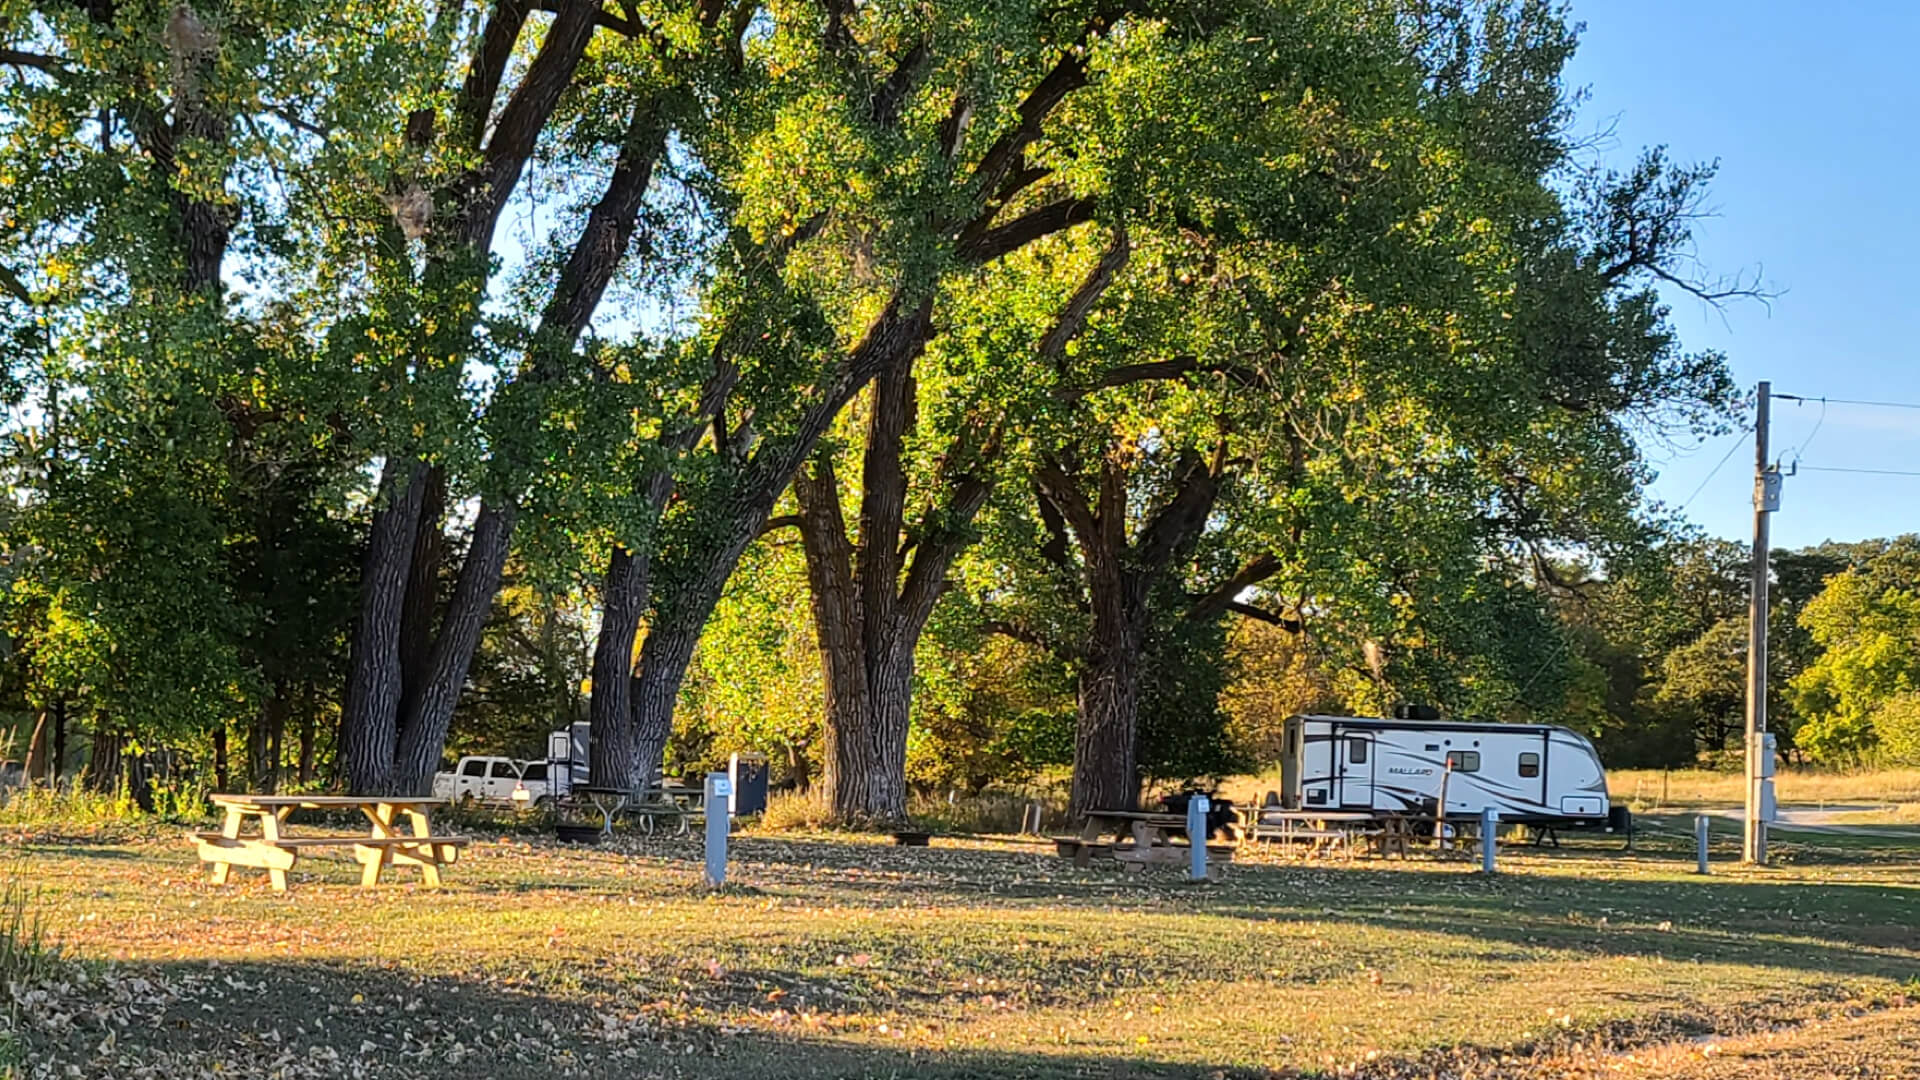 Open Camp Spot near the Niobrara River with camper in the background